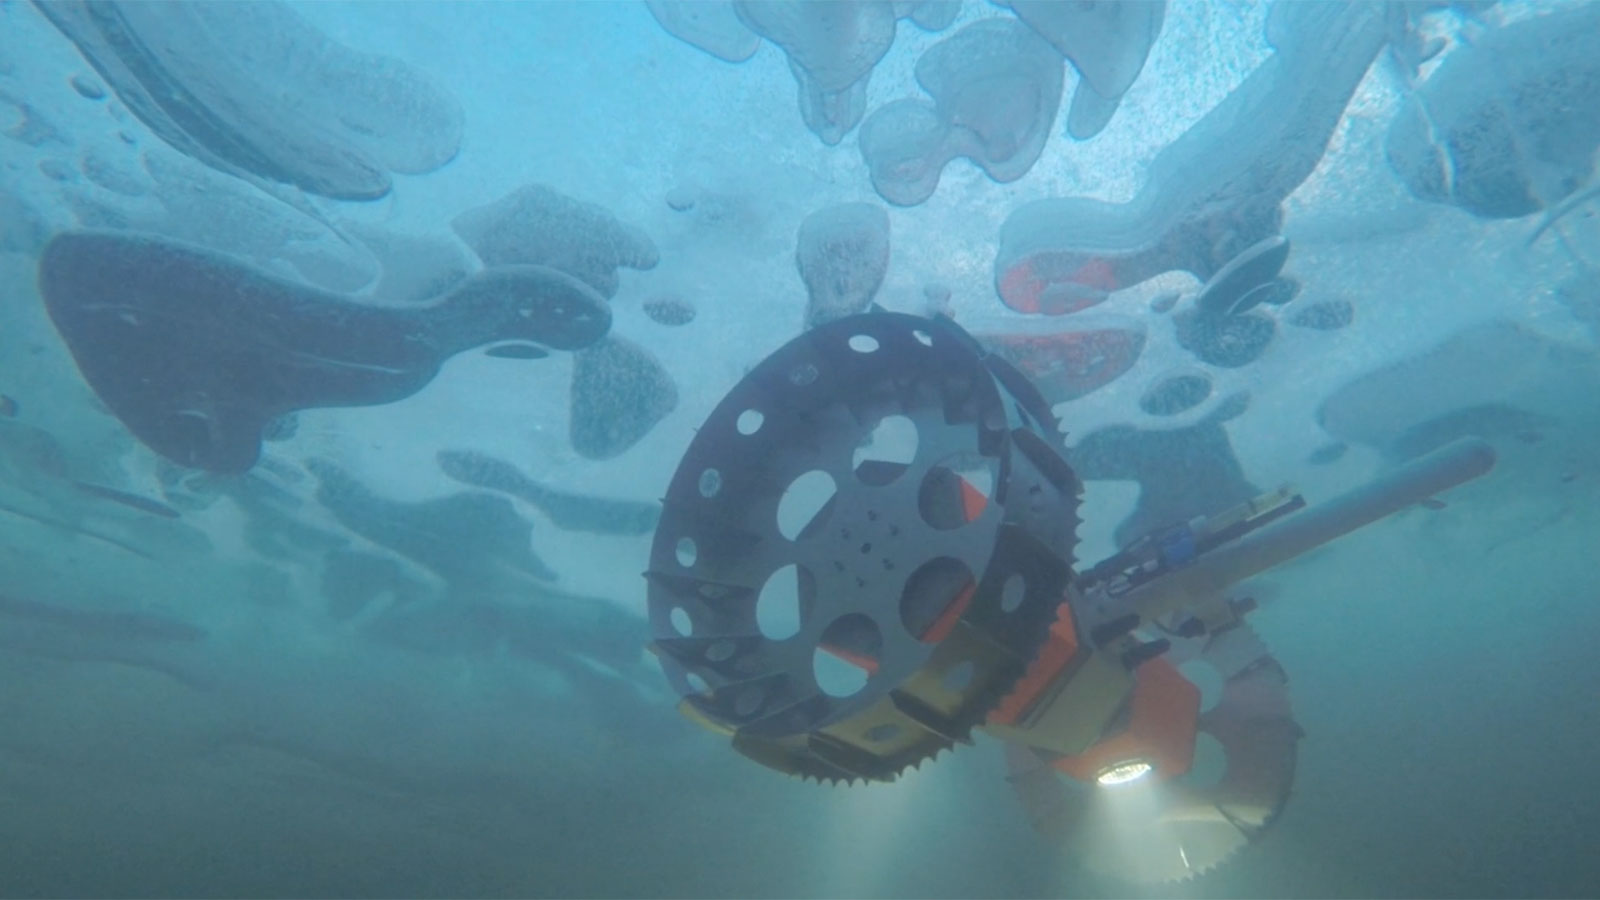 NASA's BRUIE, or the Buoyant Rover for Under-Ice Exploration, a two-wheeled underwater rover, is being tested under an Arctic lake.